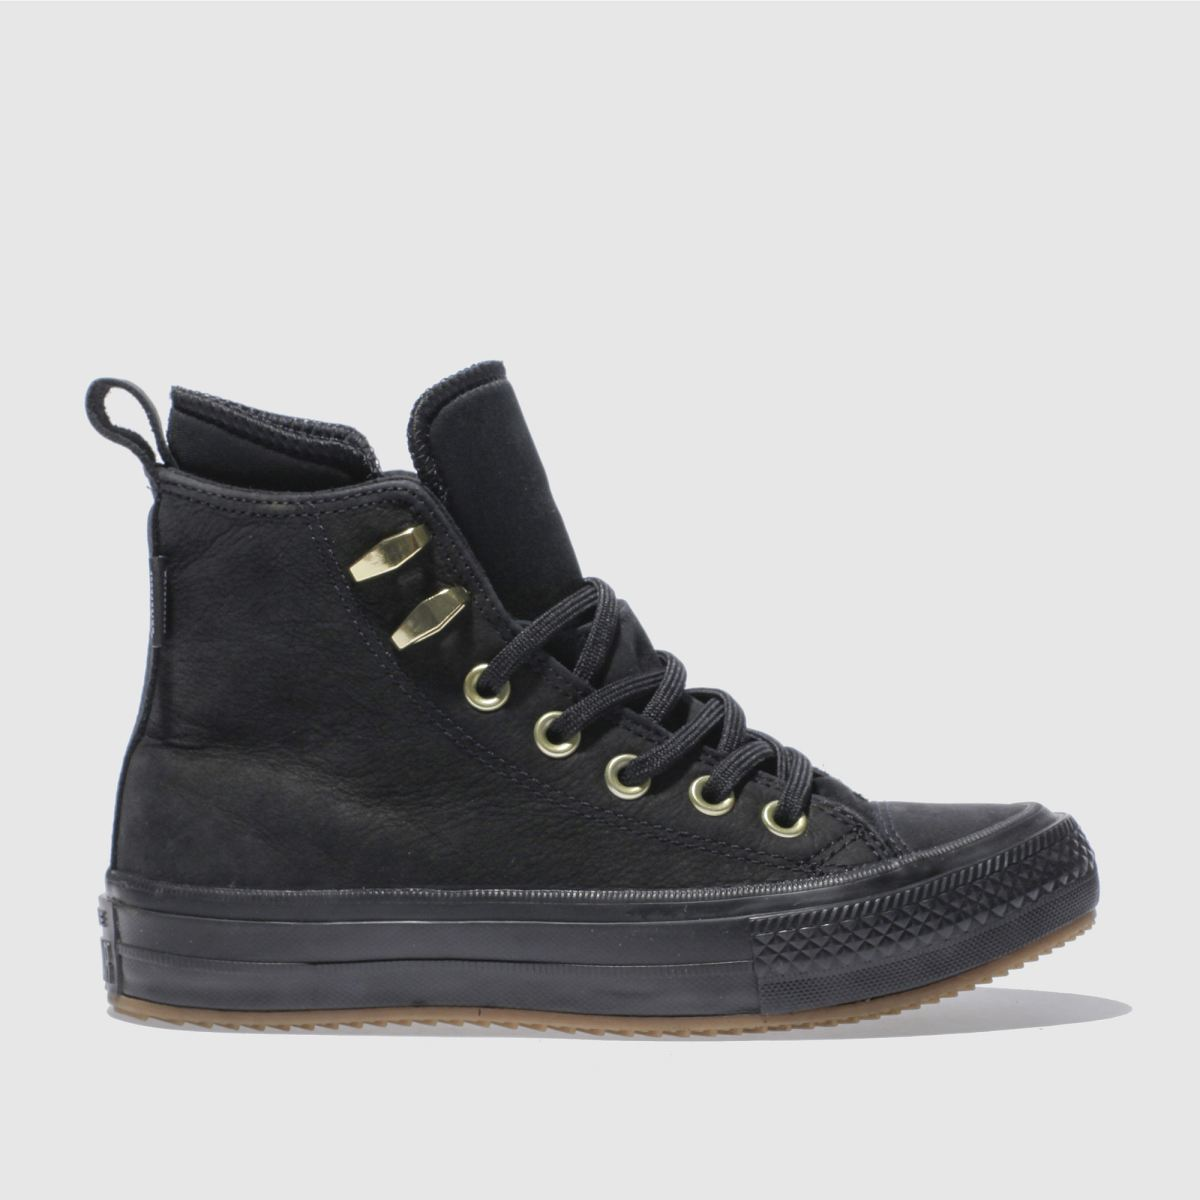 converse black all star waterproof boot hi trainers